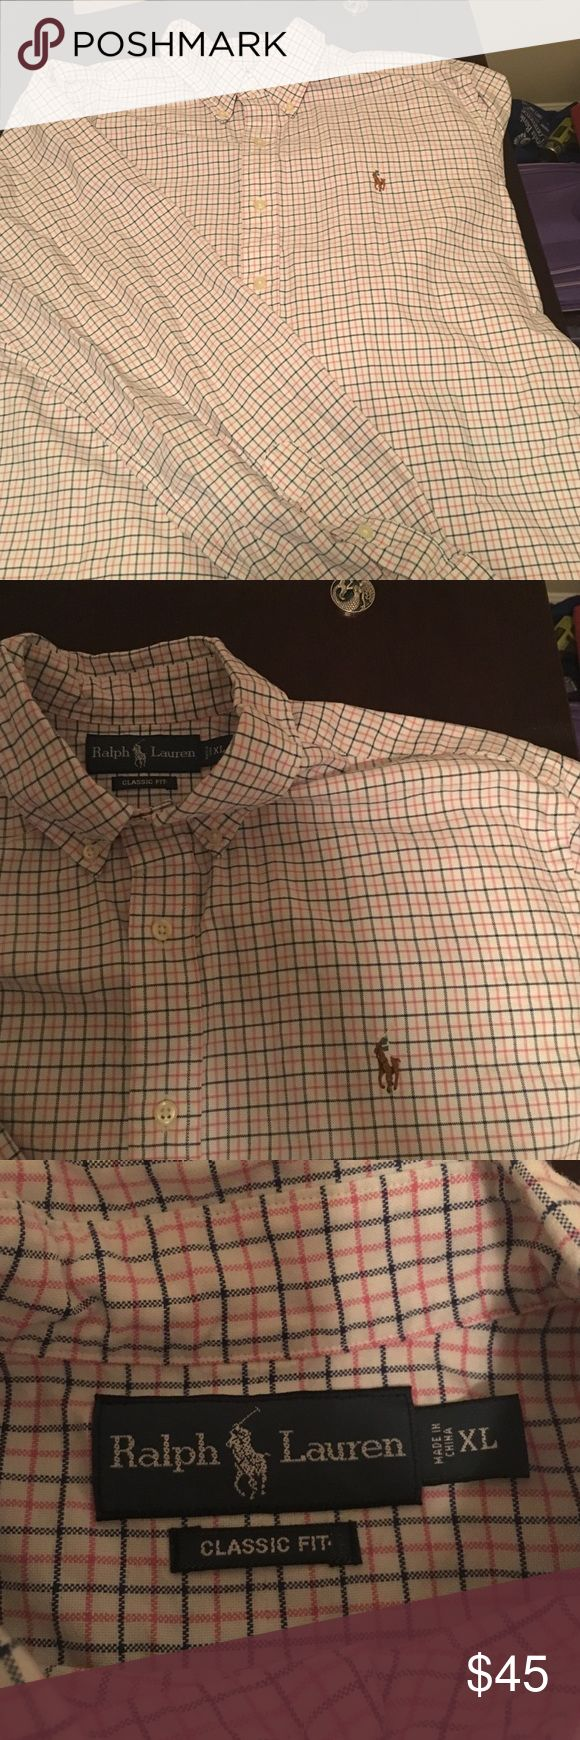 Like new long sleeve polo casual XL dress shirt Like new polo long sleeve casual dress shirt. Only worn twice. Just doesn't fit me anymore. Great for casual or more dressy occasions. Polo by Ralph Lauren Shirts Casual Button Down Shirts